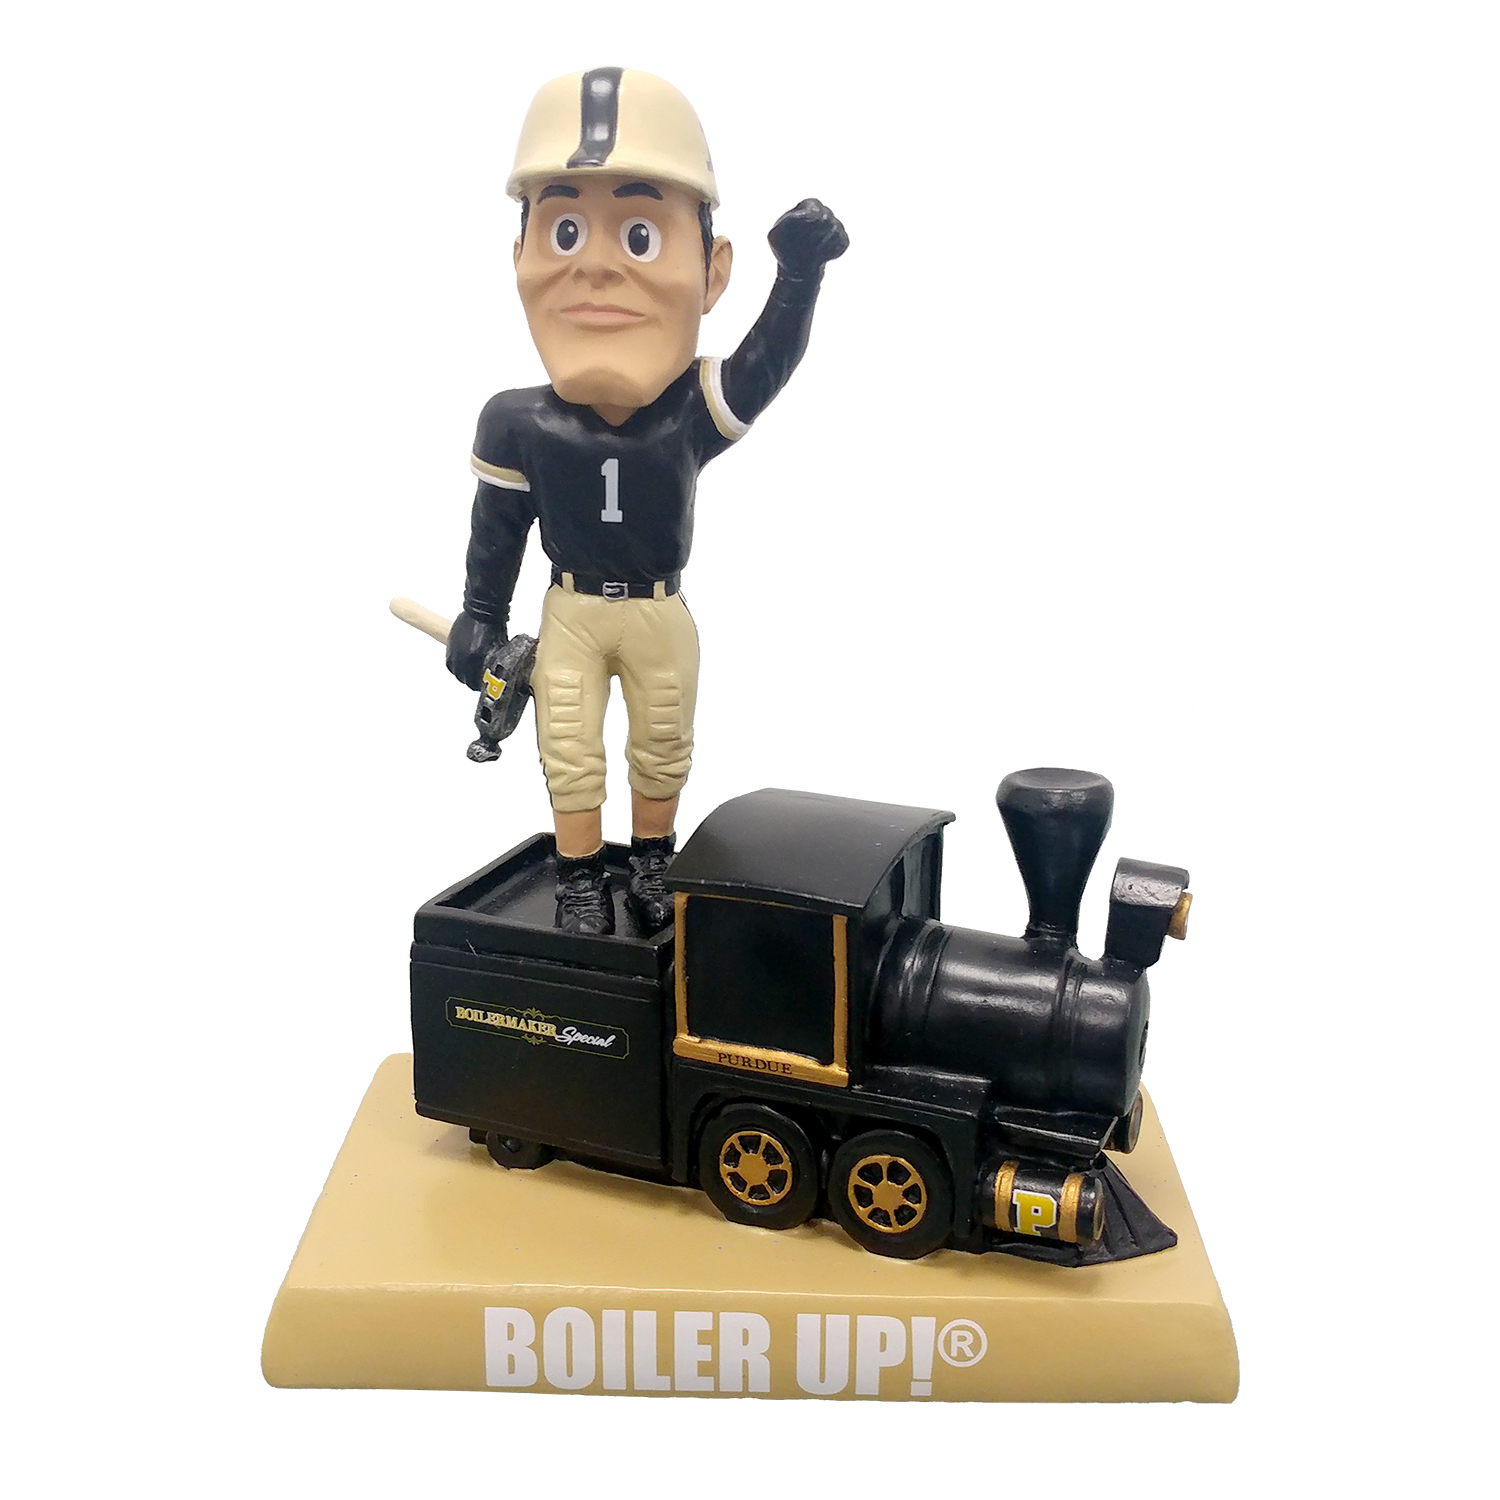 Purdue Boiler Up Train Bobblehead Gallery